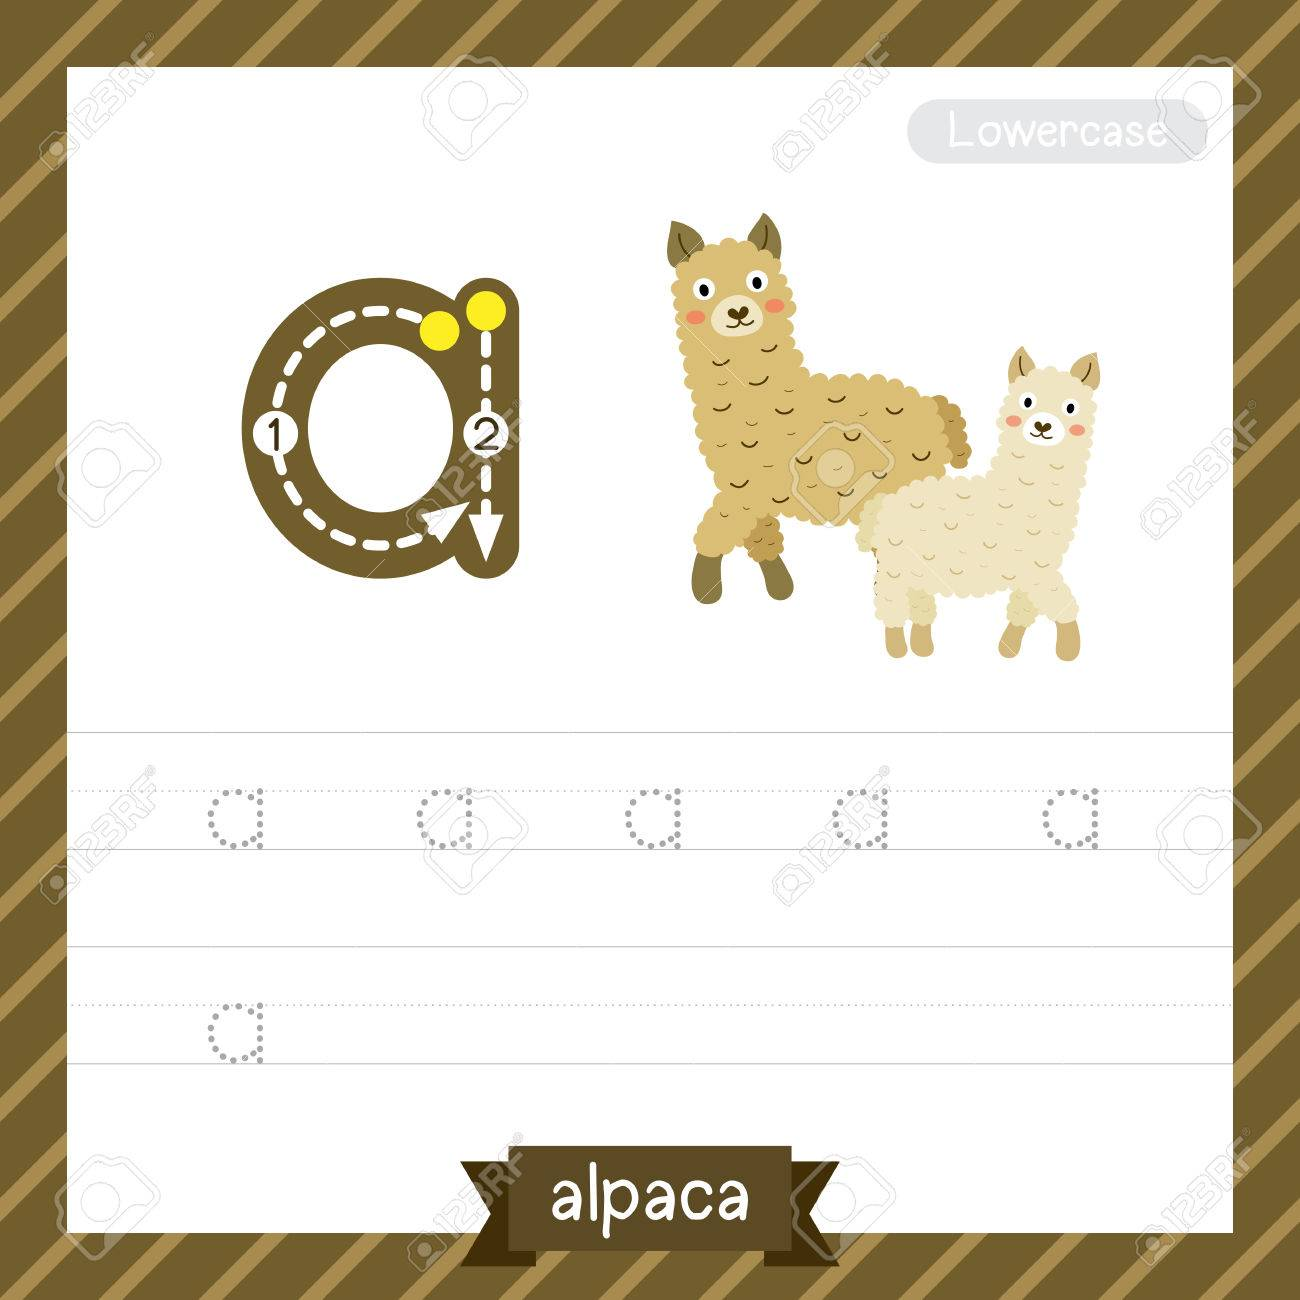 Letter A Lowercase Tracing Practice Worksheet With Alpaca For ...